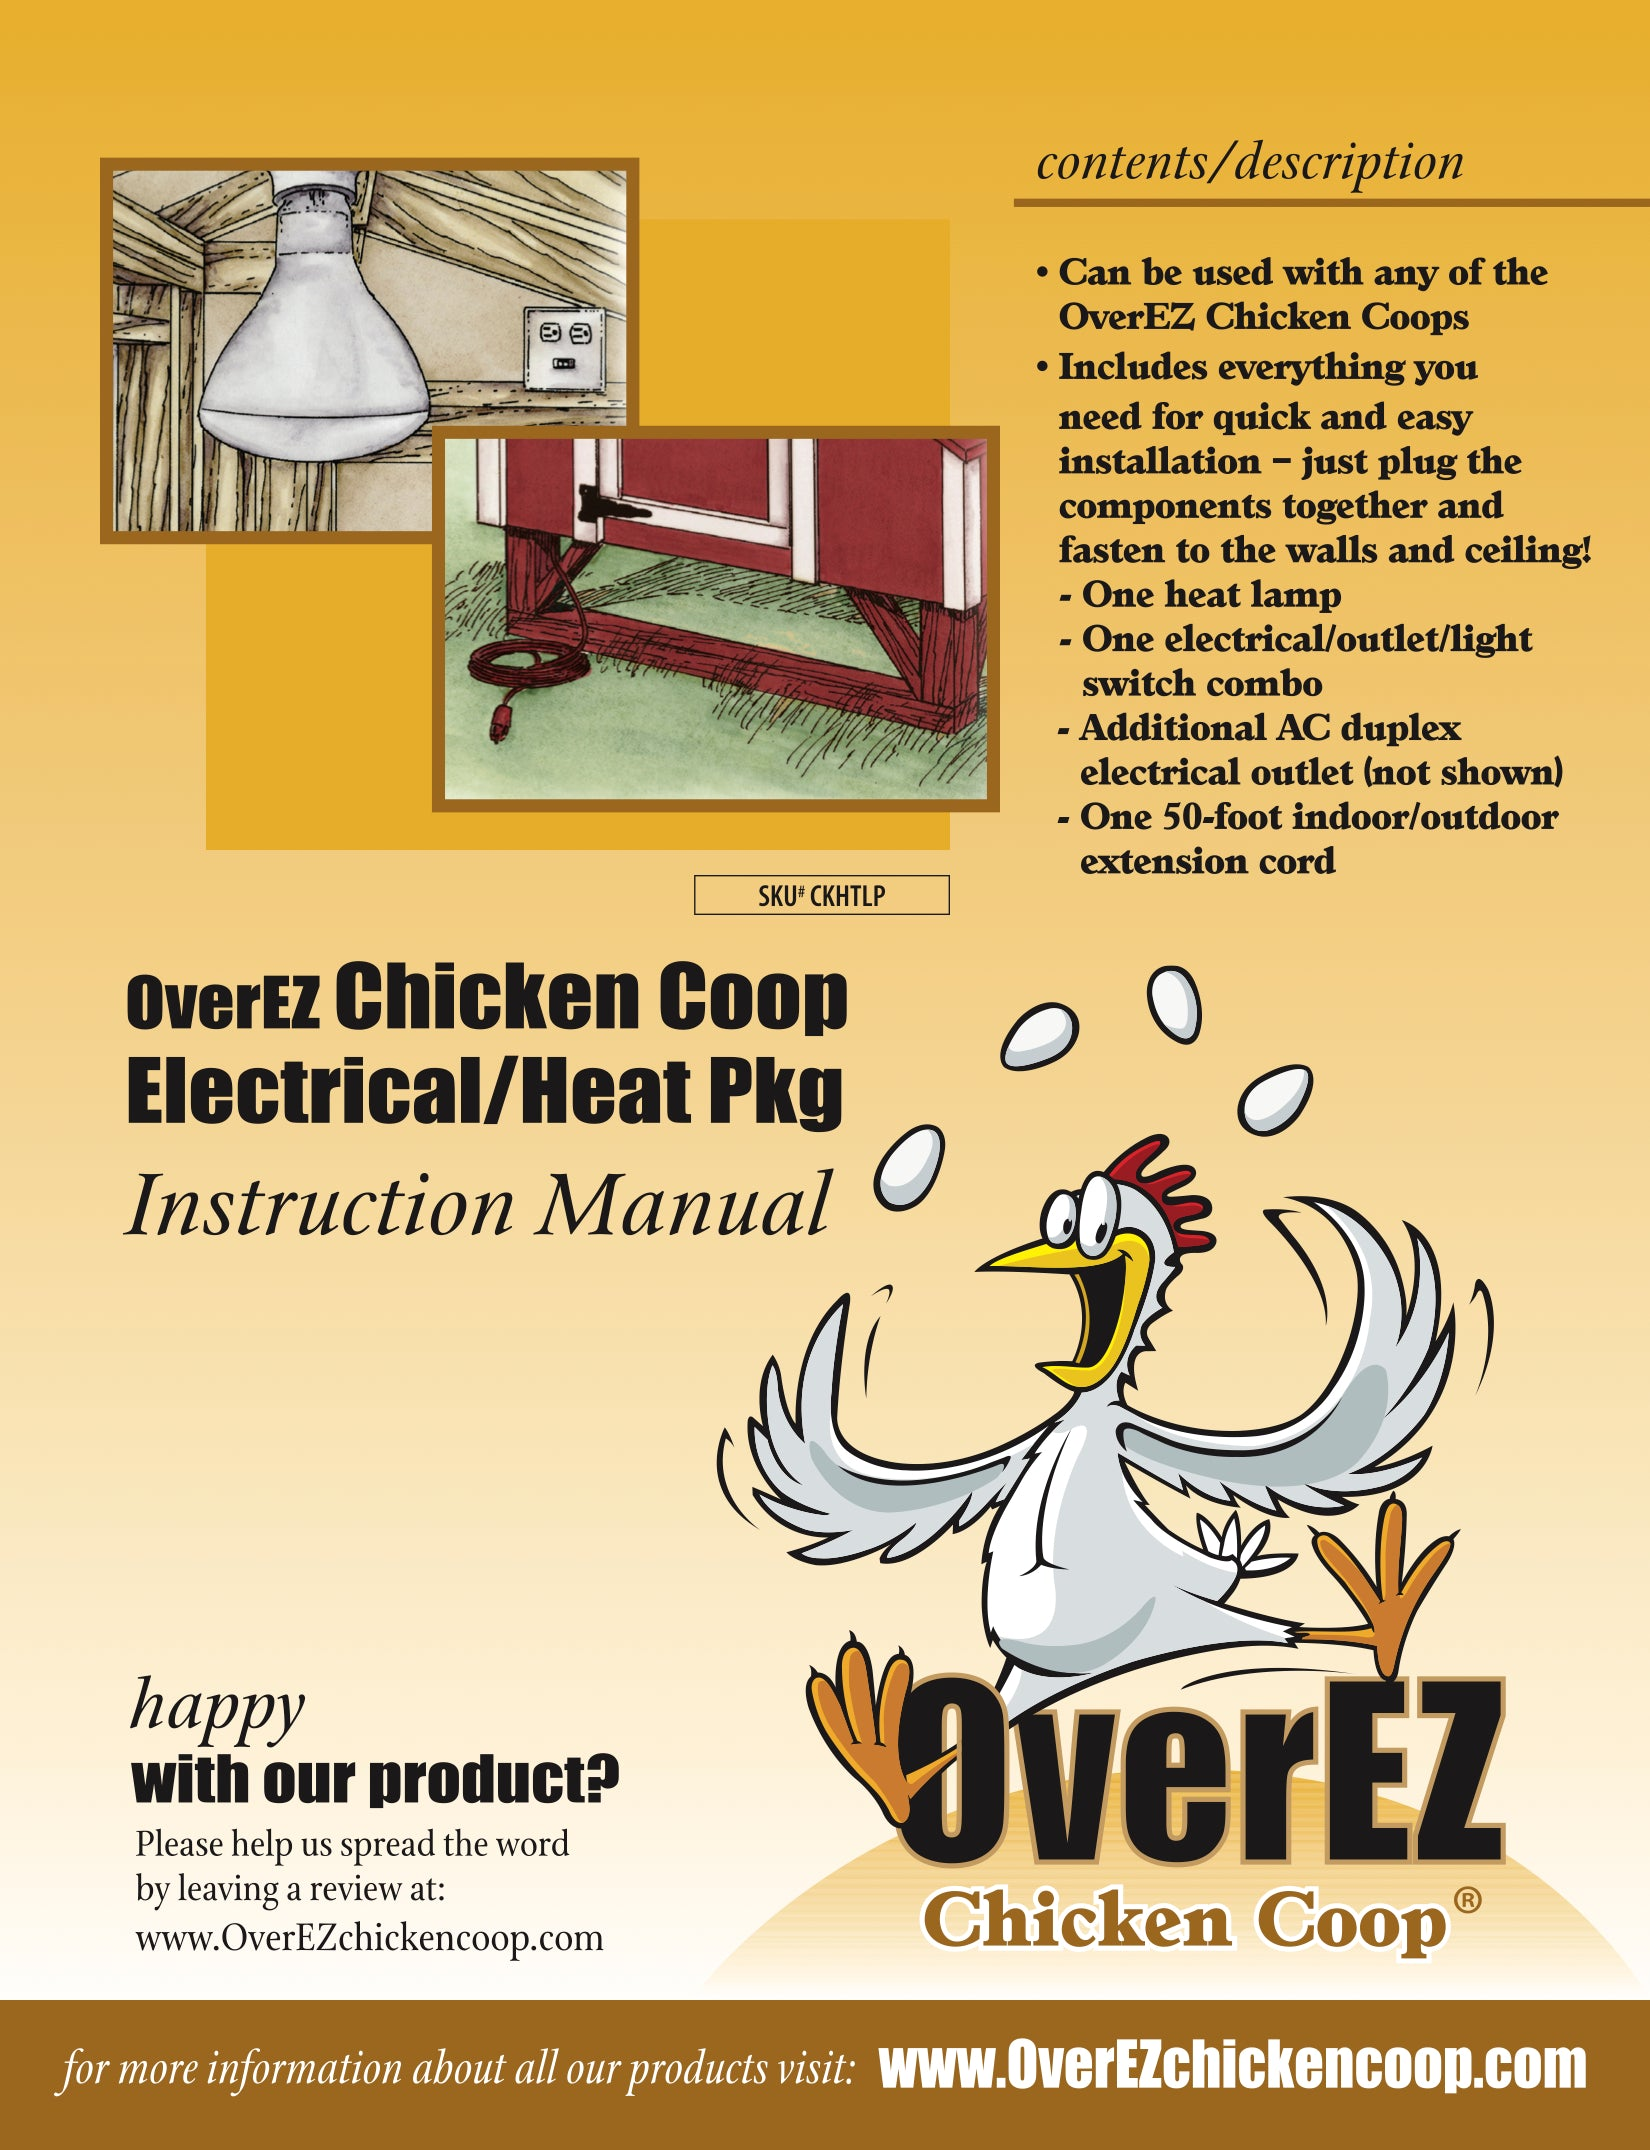 OverEZ Chicken Coop Electrical/Heat Package Instructions